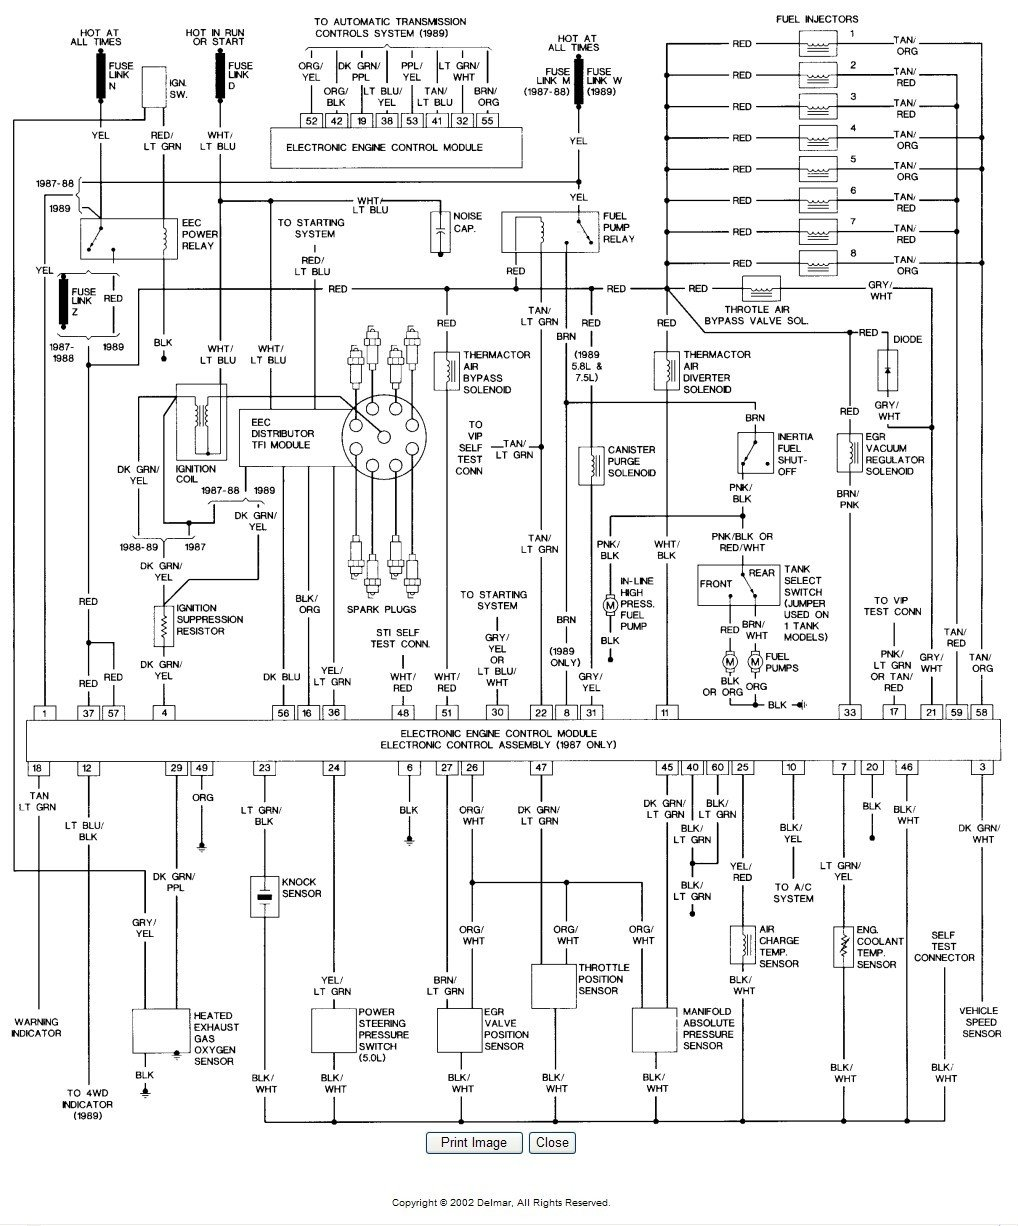 please help   i need the wiring schematics for my 1988